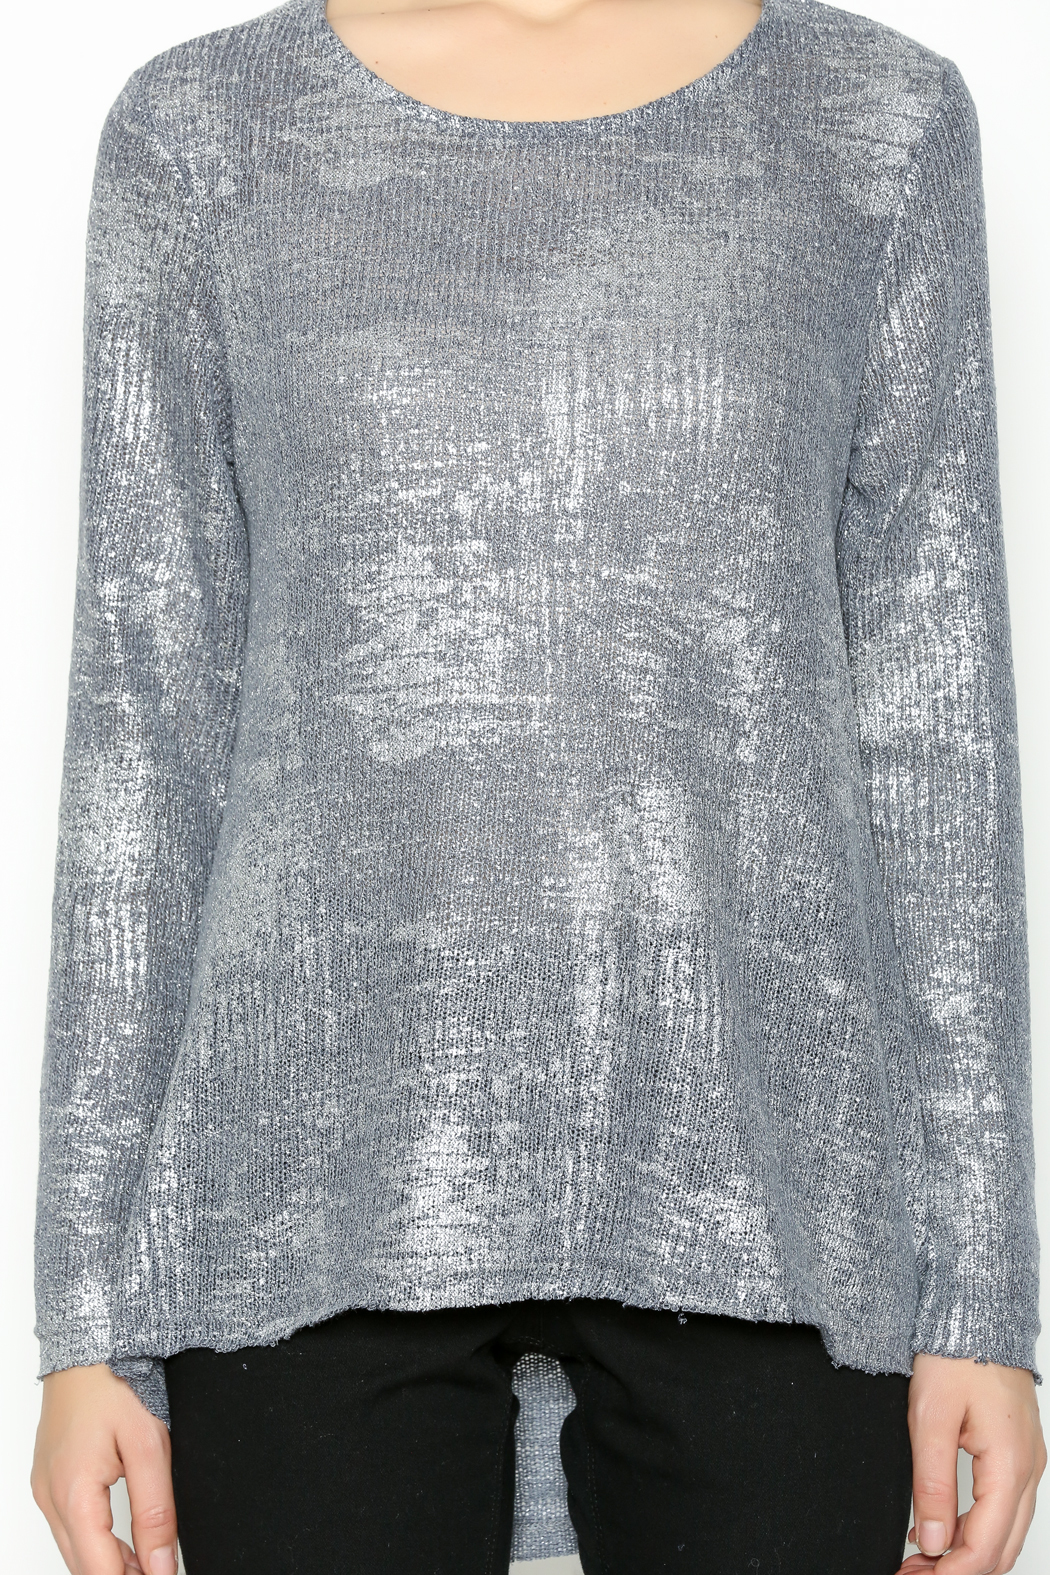 Mystic Shimmer Sweater From New York By Dor Ldor Shoptiques